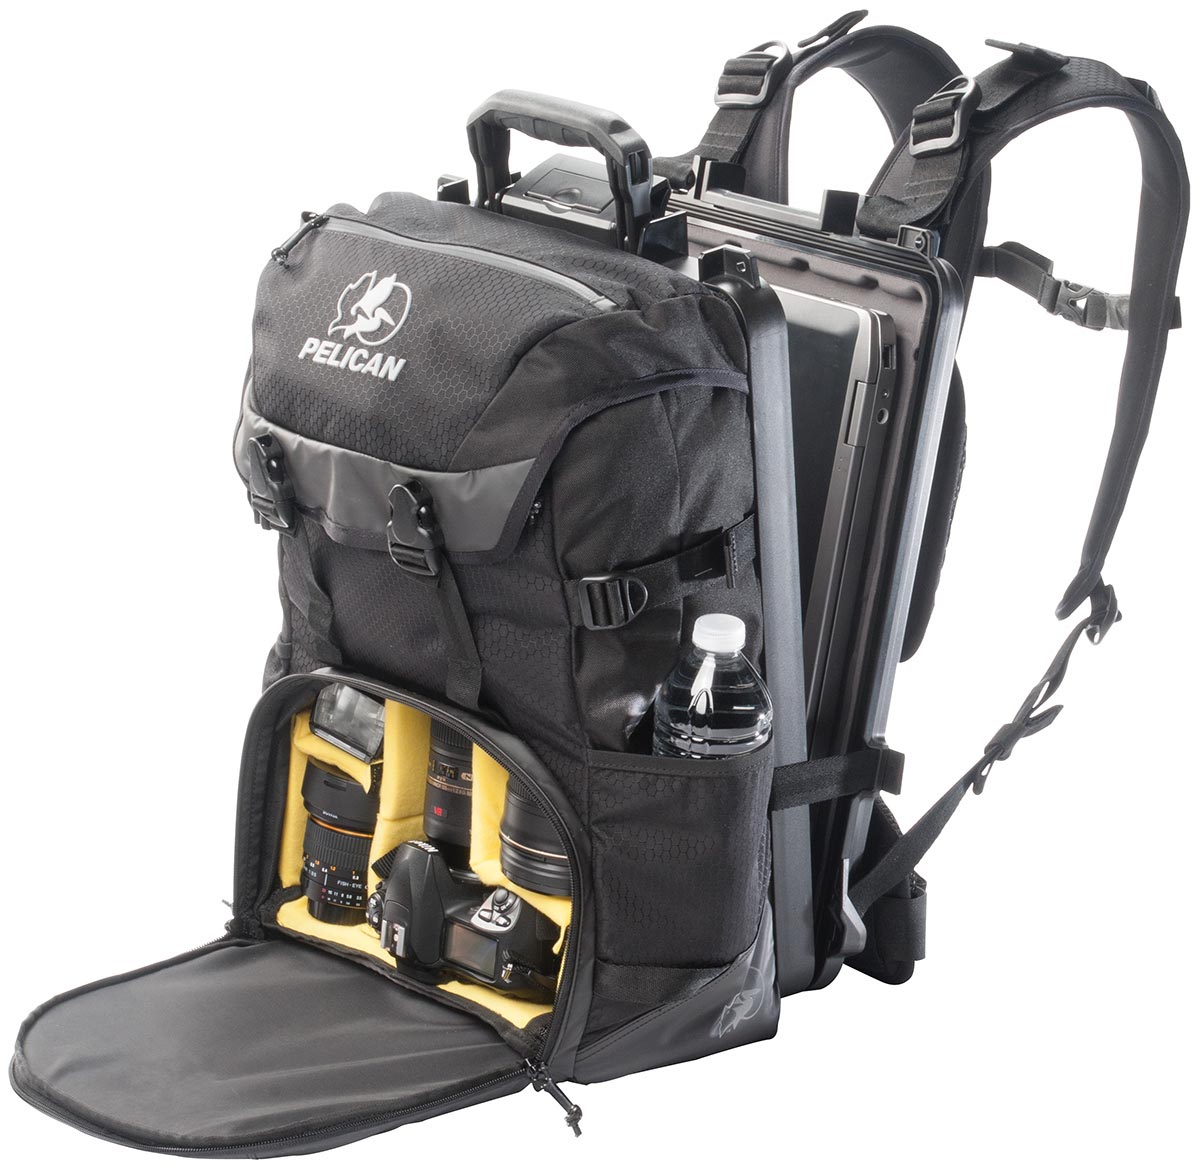 buy pelican backpack s130 photographer camera travel bag